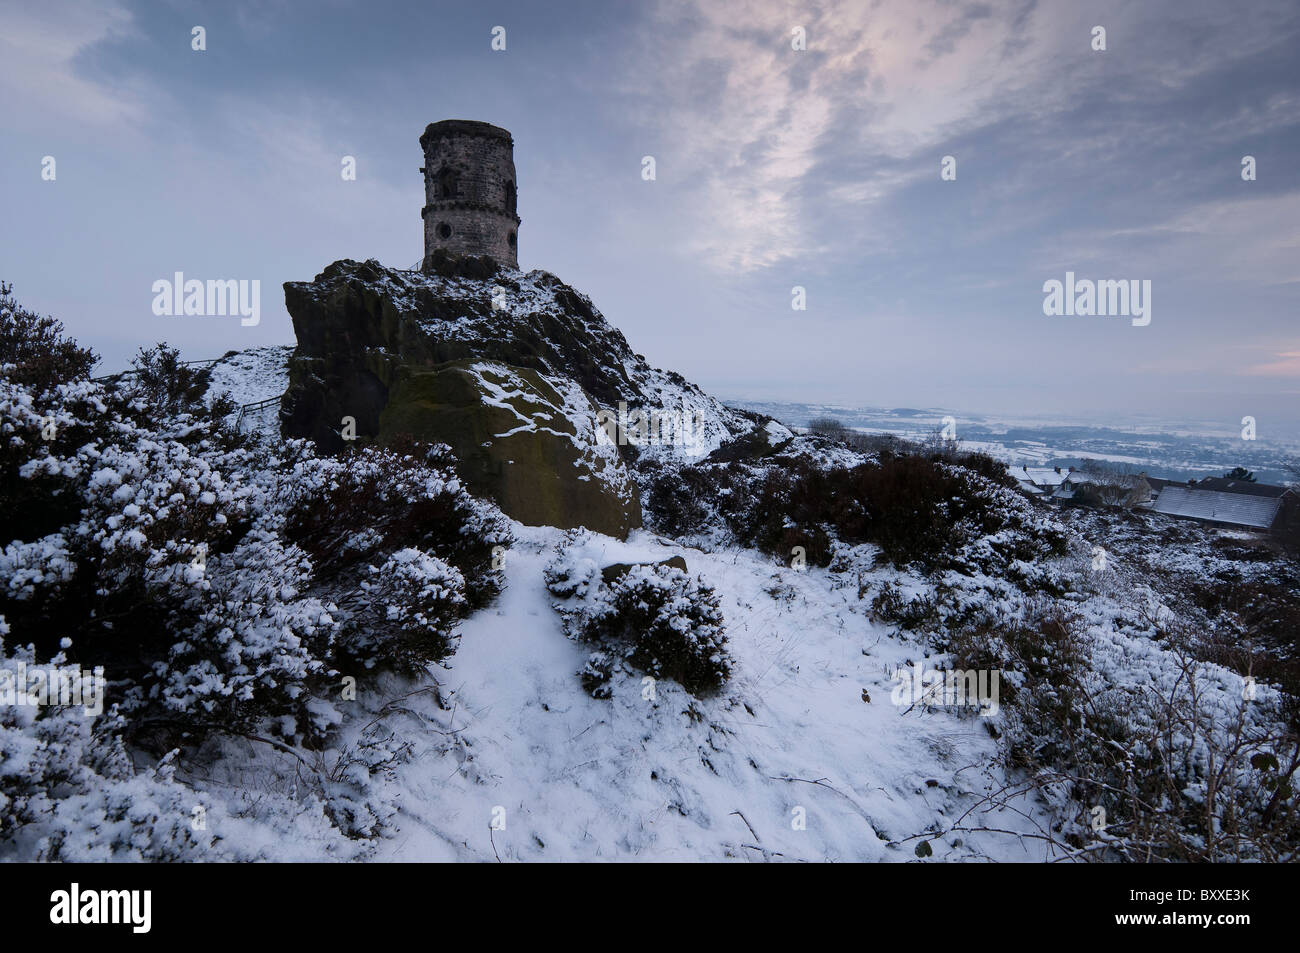 Winter evening at the folly of Mow Cop on the Staffordshire / Cheshire border - Stock Image